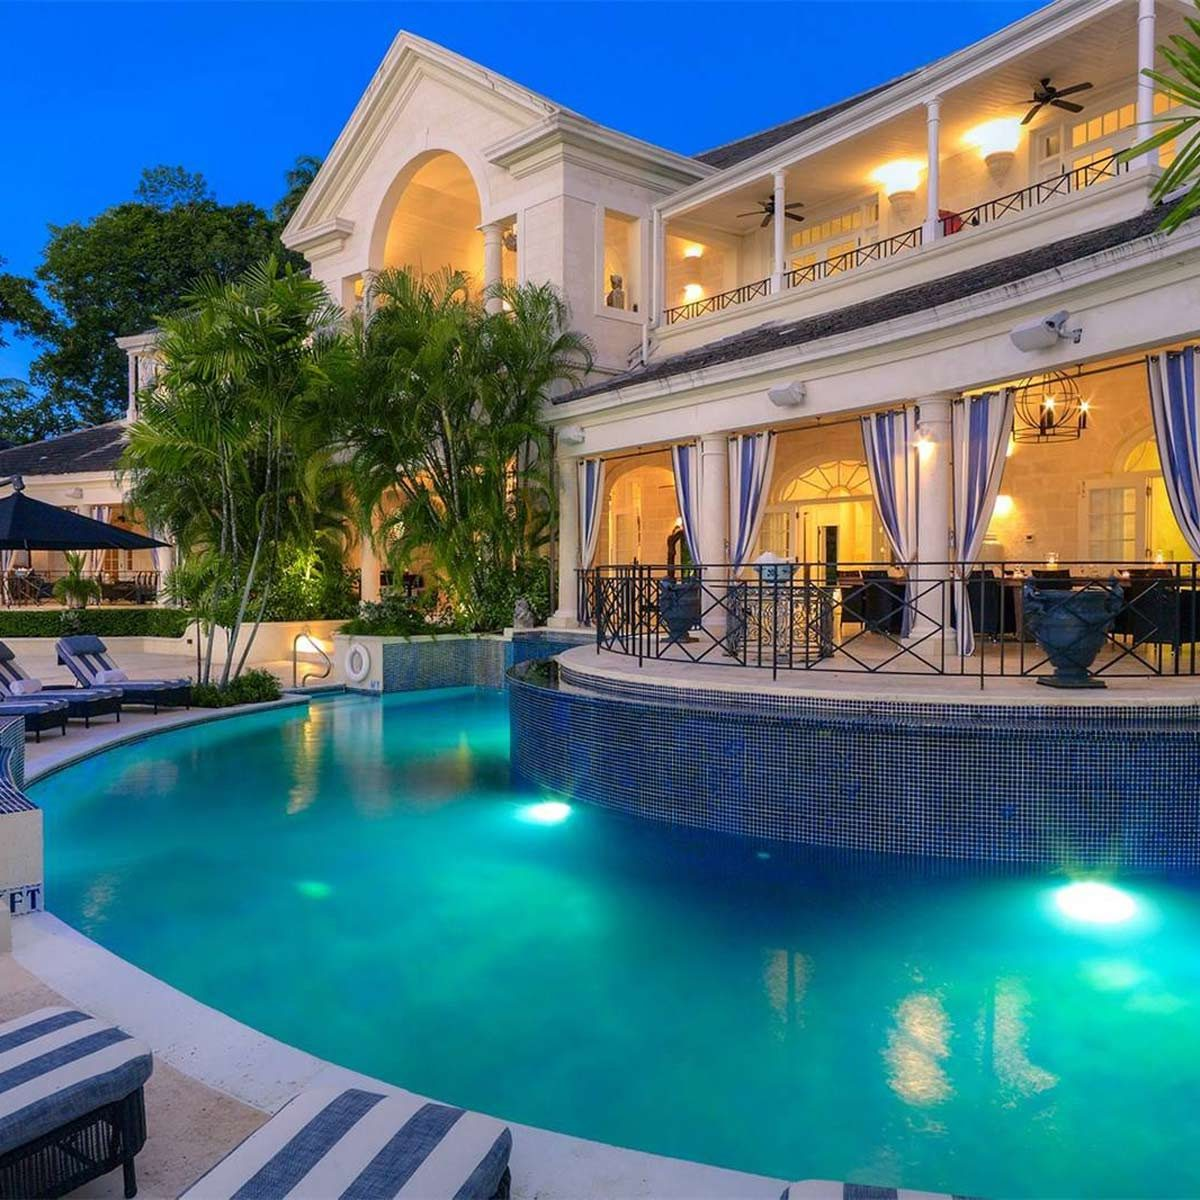 Cove spring mansion in St. James Barbadoes